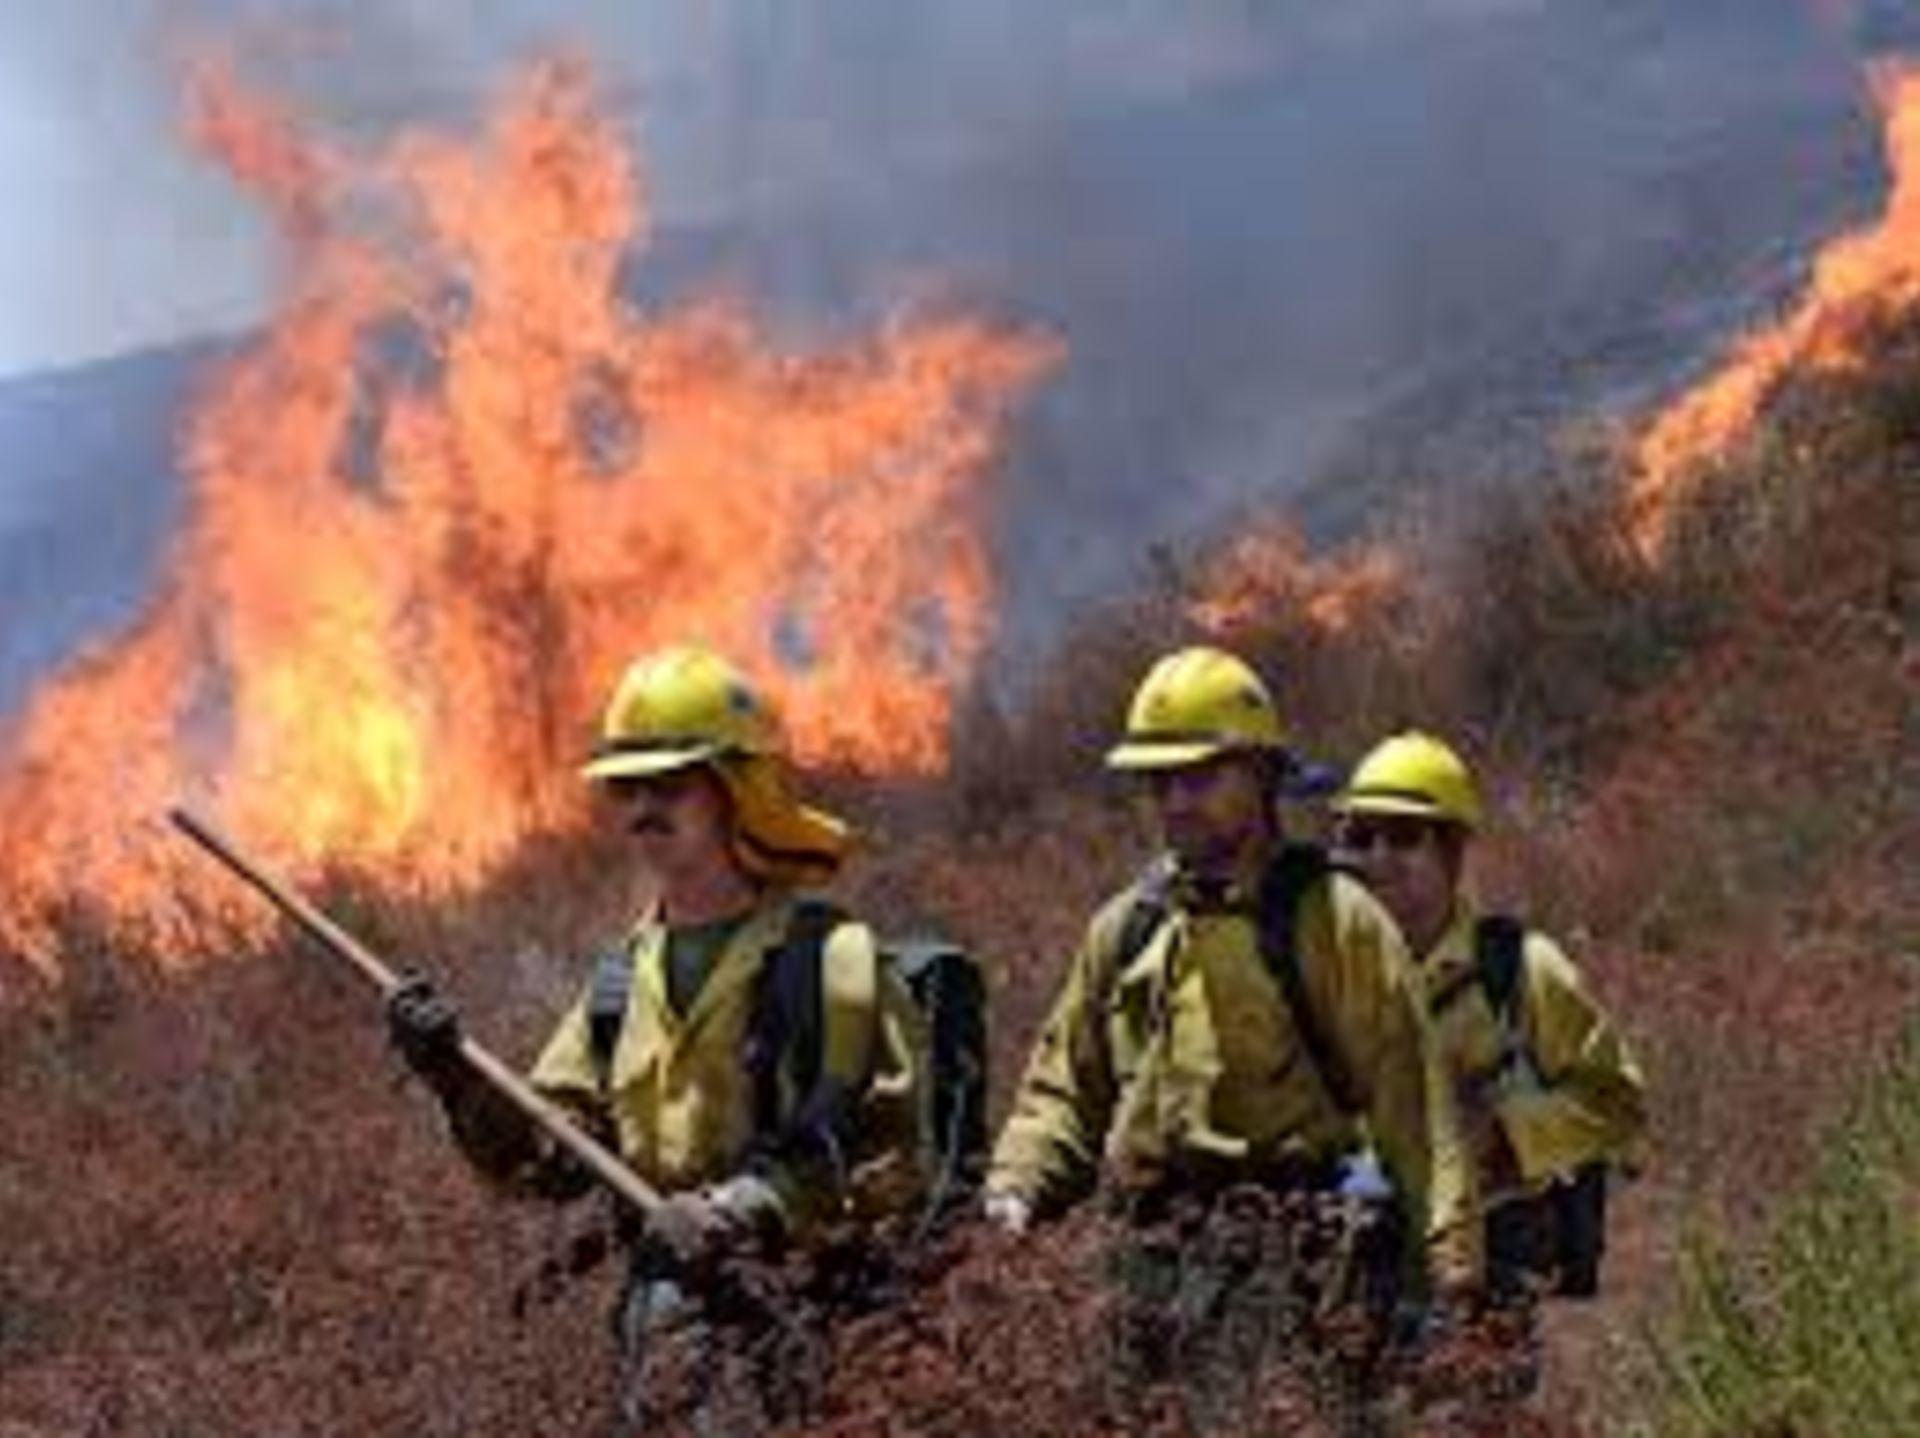 This could be LA's worst fire season in years